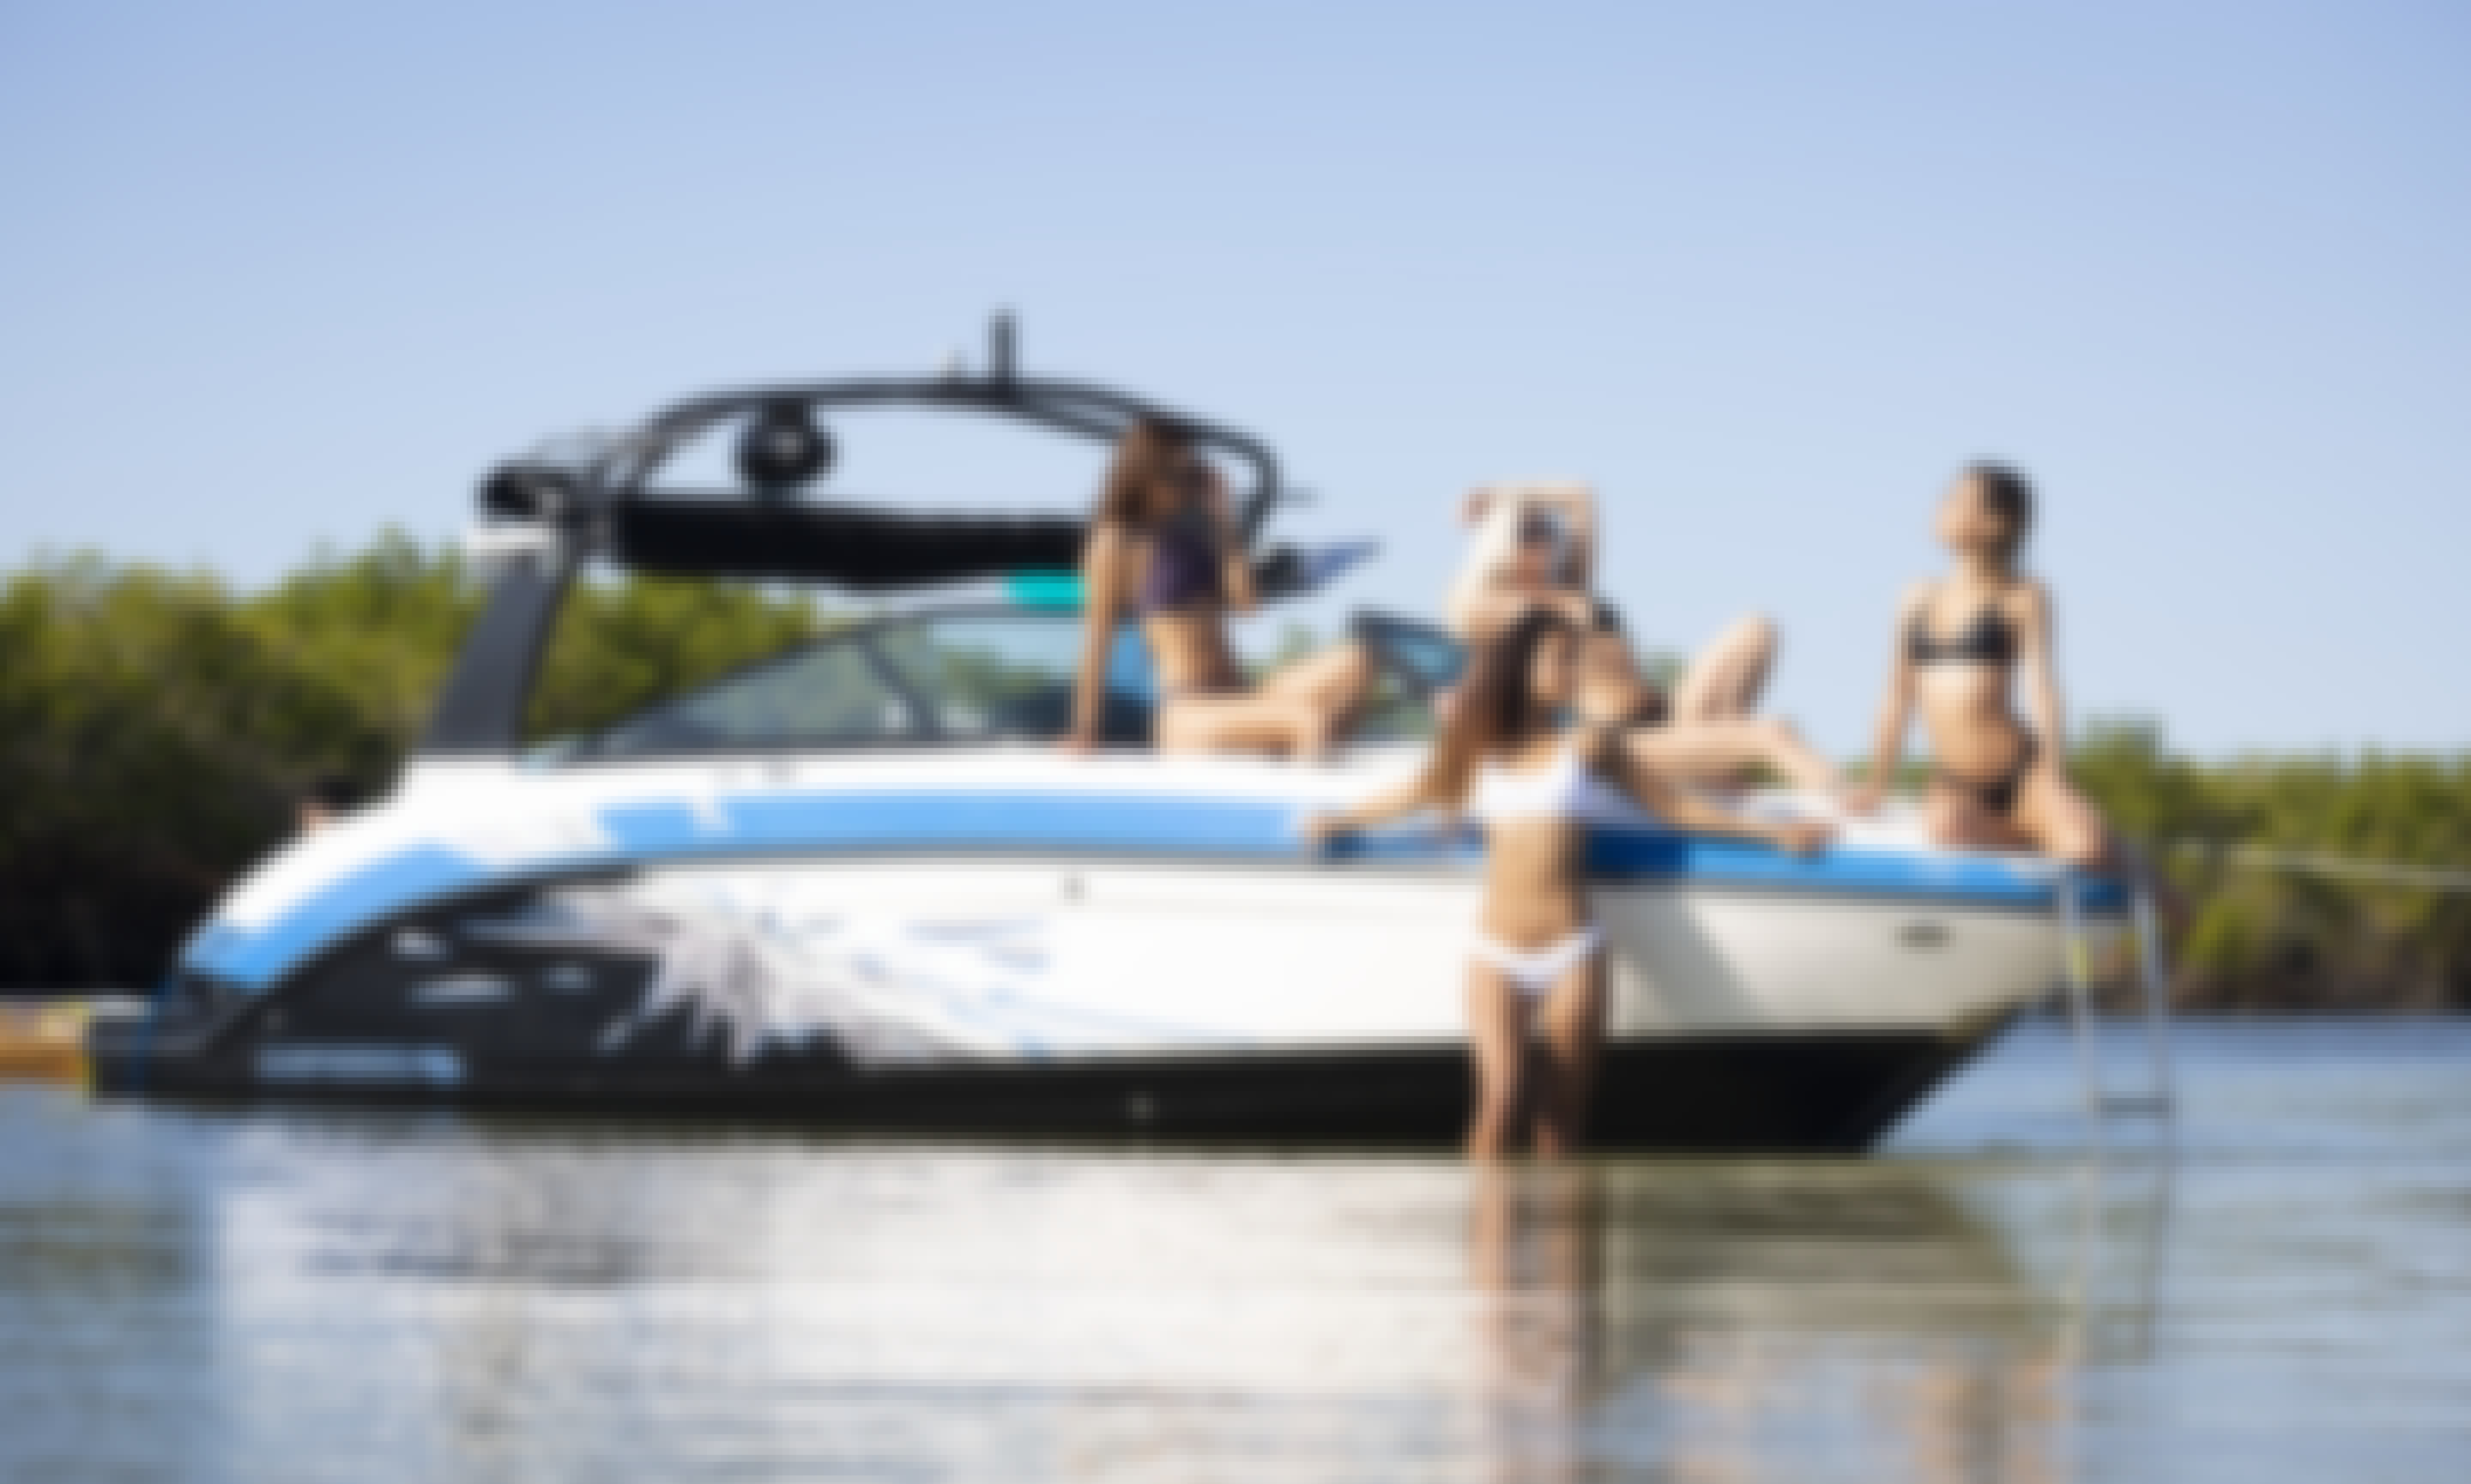 24' Chaparral Vortex Jet Boat for Rent in Ponce Inlet, Florida